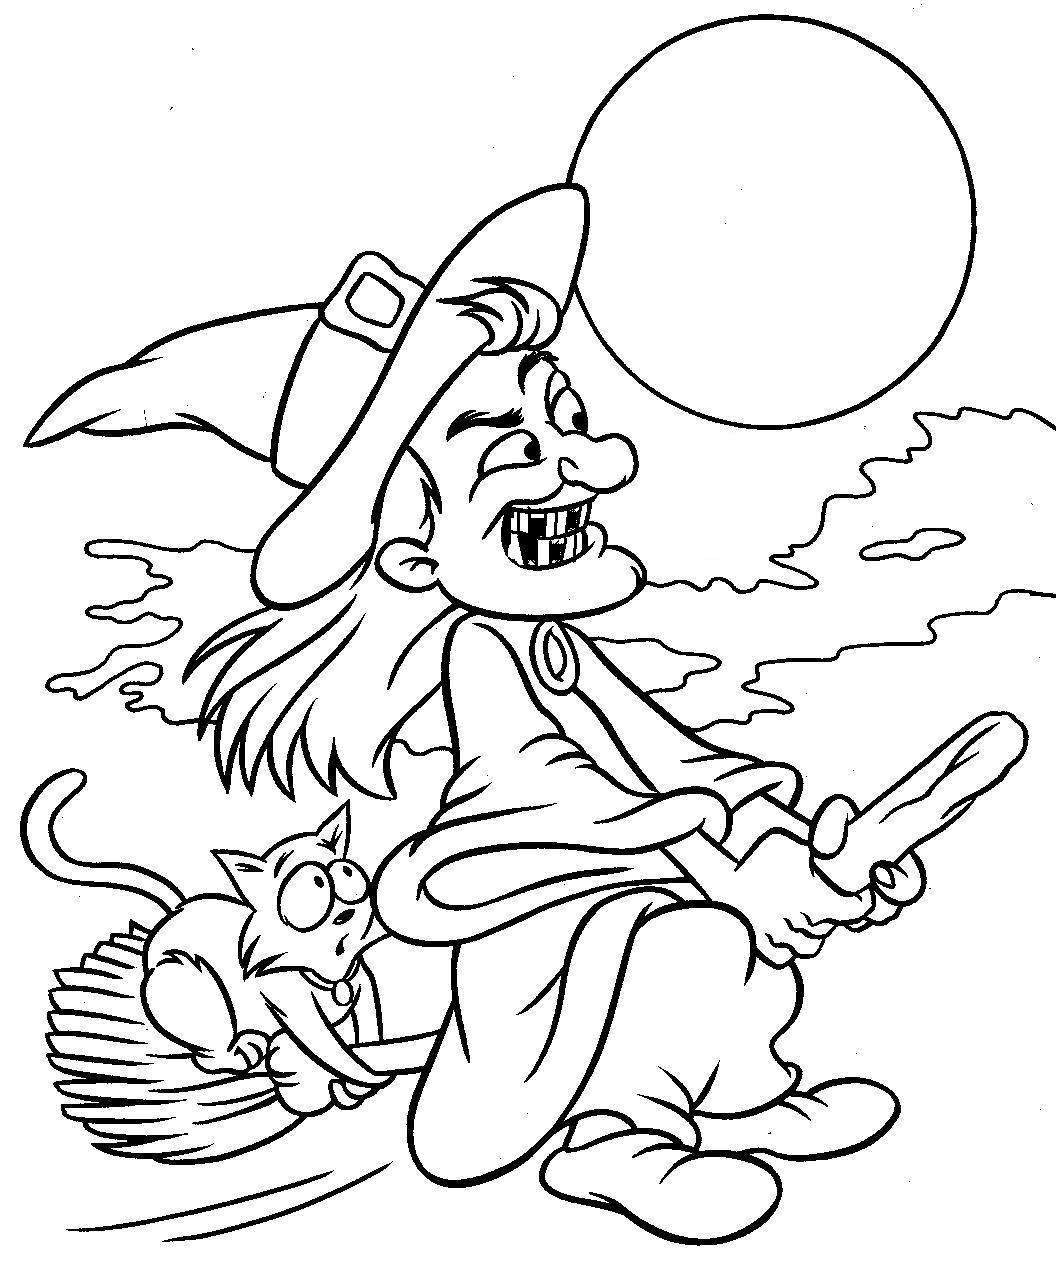 Witchcraft coloring #19, Download drawings